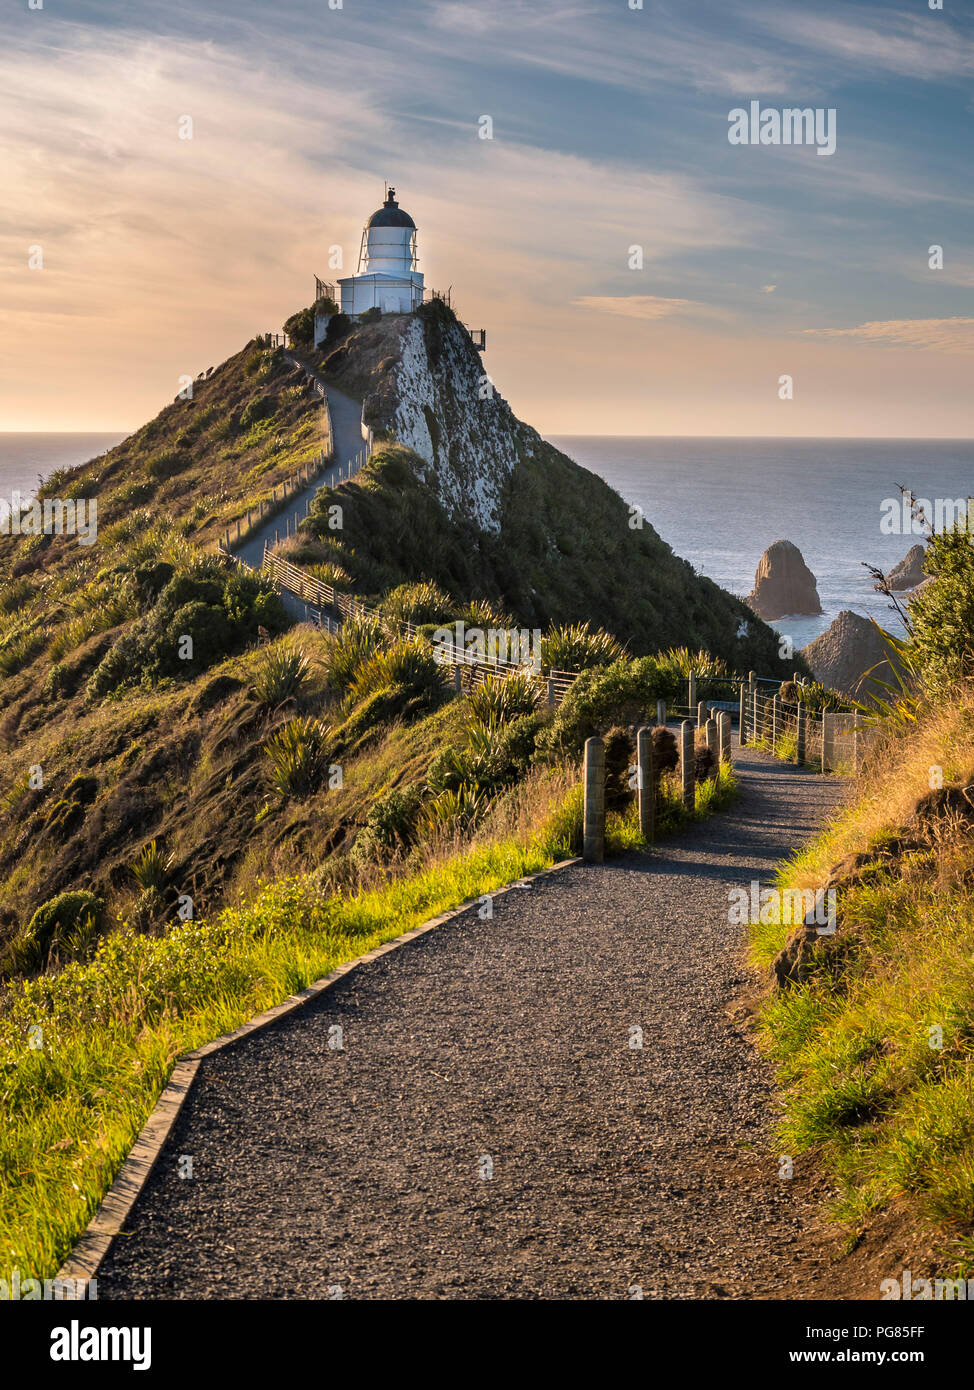 Neuseeland, Südinsel, Southern Scenic Route, Catlins, Nugget Point Lighthouse Stockfoto